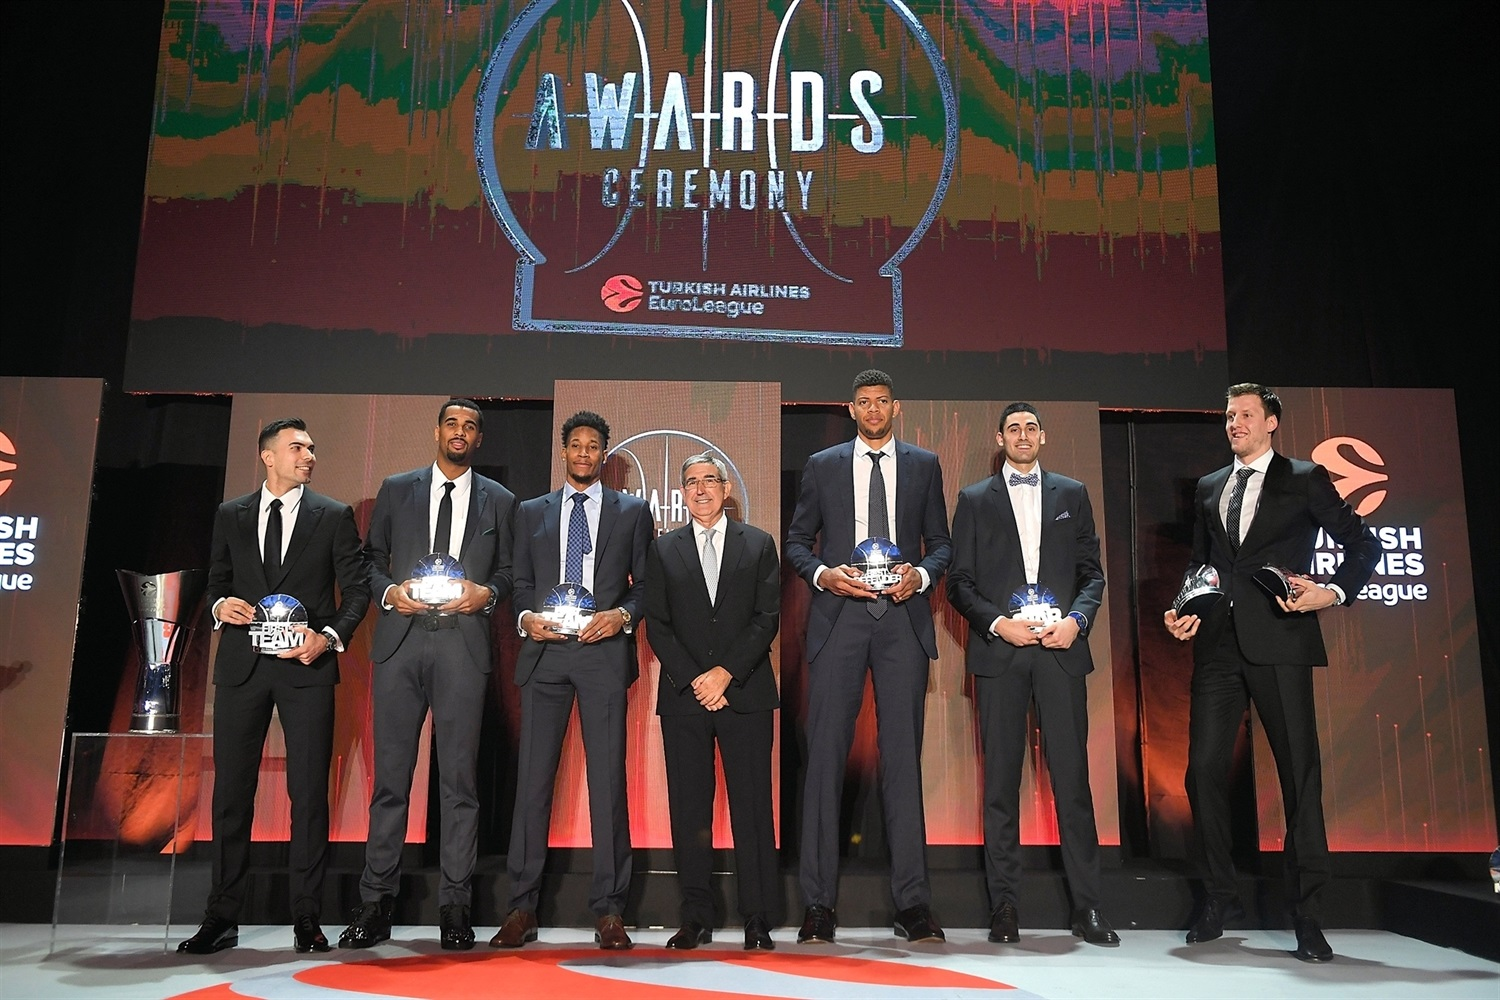 2018-19 Awards Ceremony - Final Four Vitoria-Gasteiz 2019 - EB18